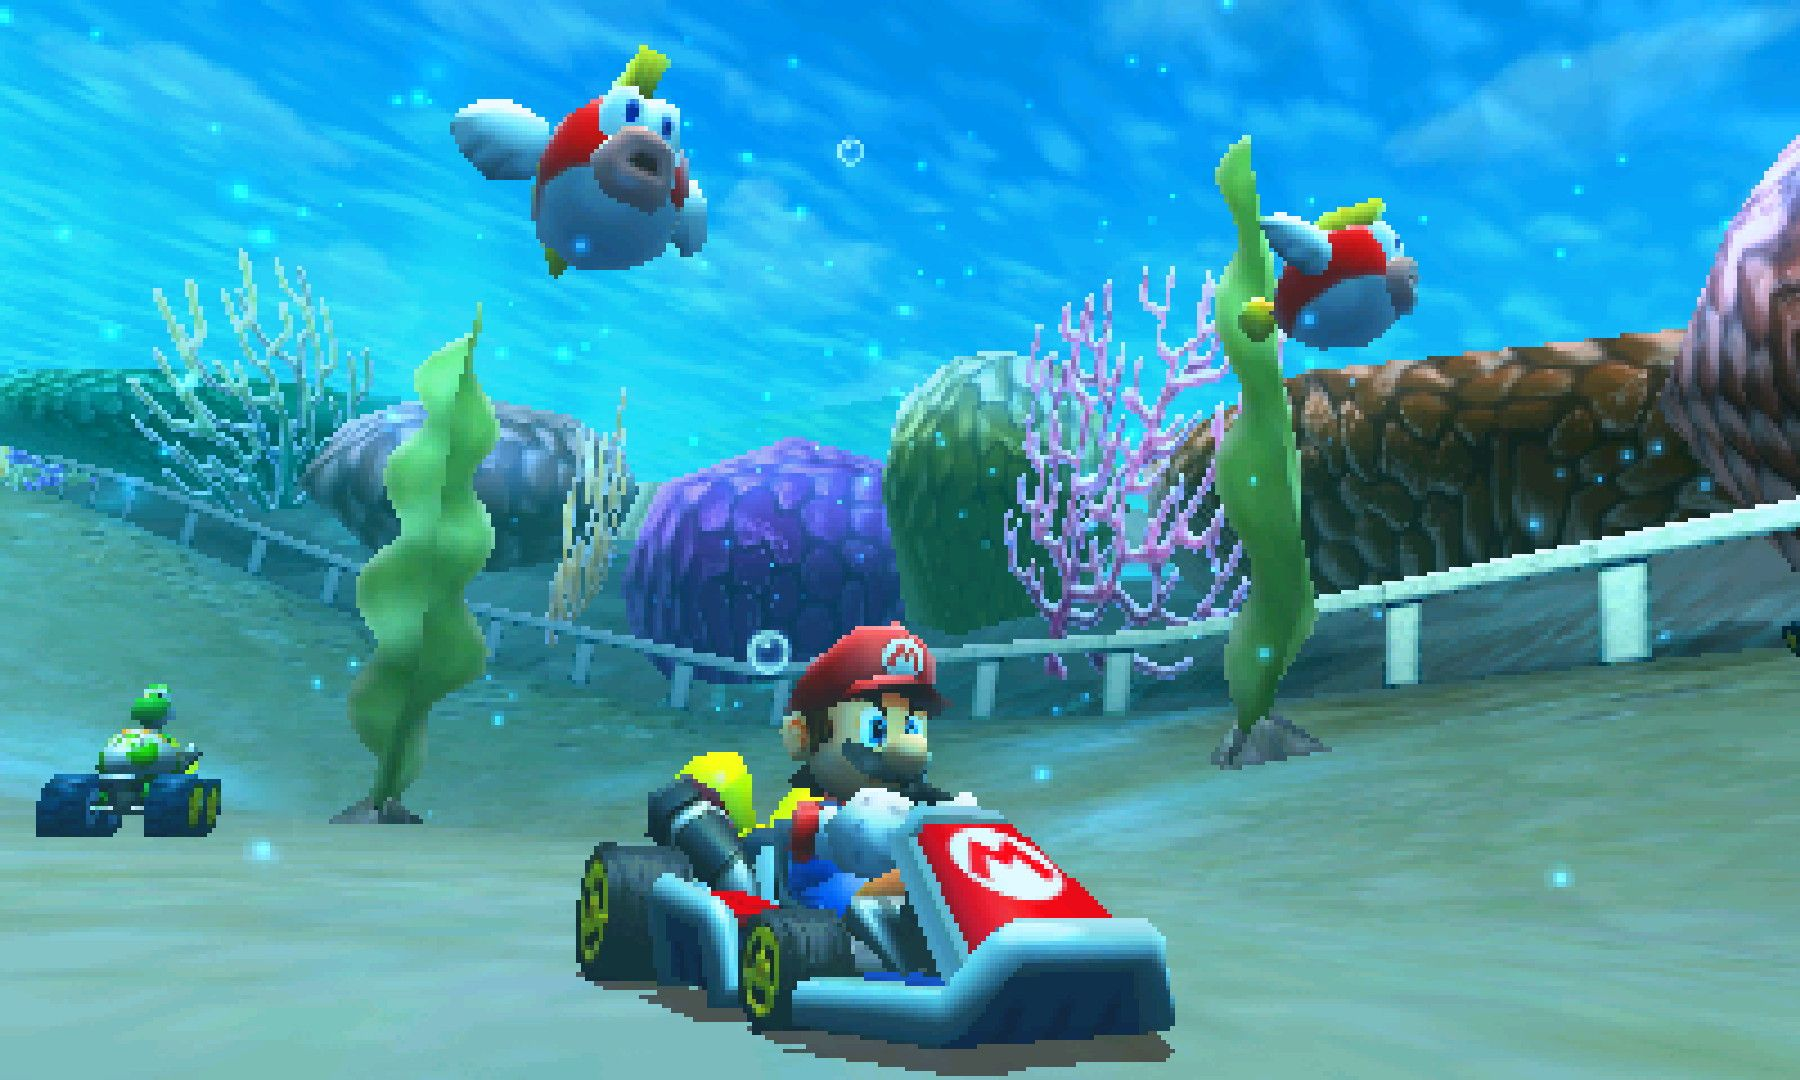 Mario Kart is coming to your phone